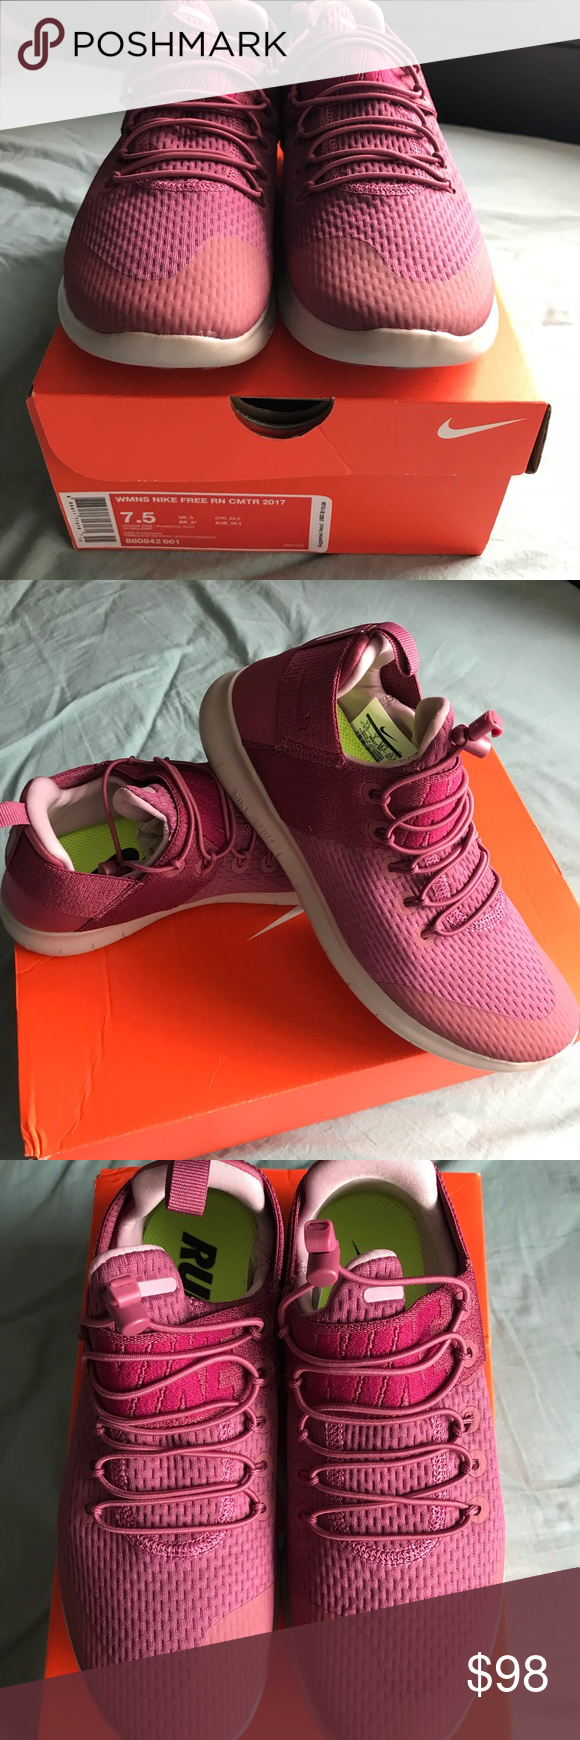 ae701b863165 WMNS Nike FreeRun Commuter 2017 Vintage wine Elemental rose color Nike free  run. Size 7.5. New never worn. I prefer my all black free runs over this